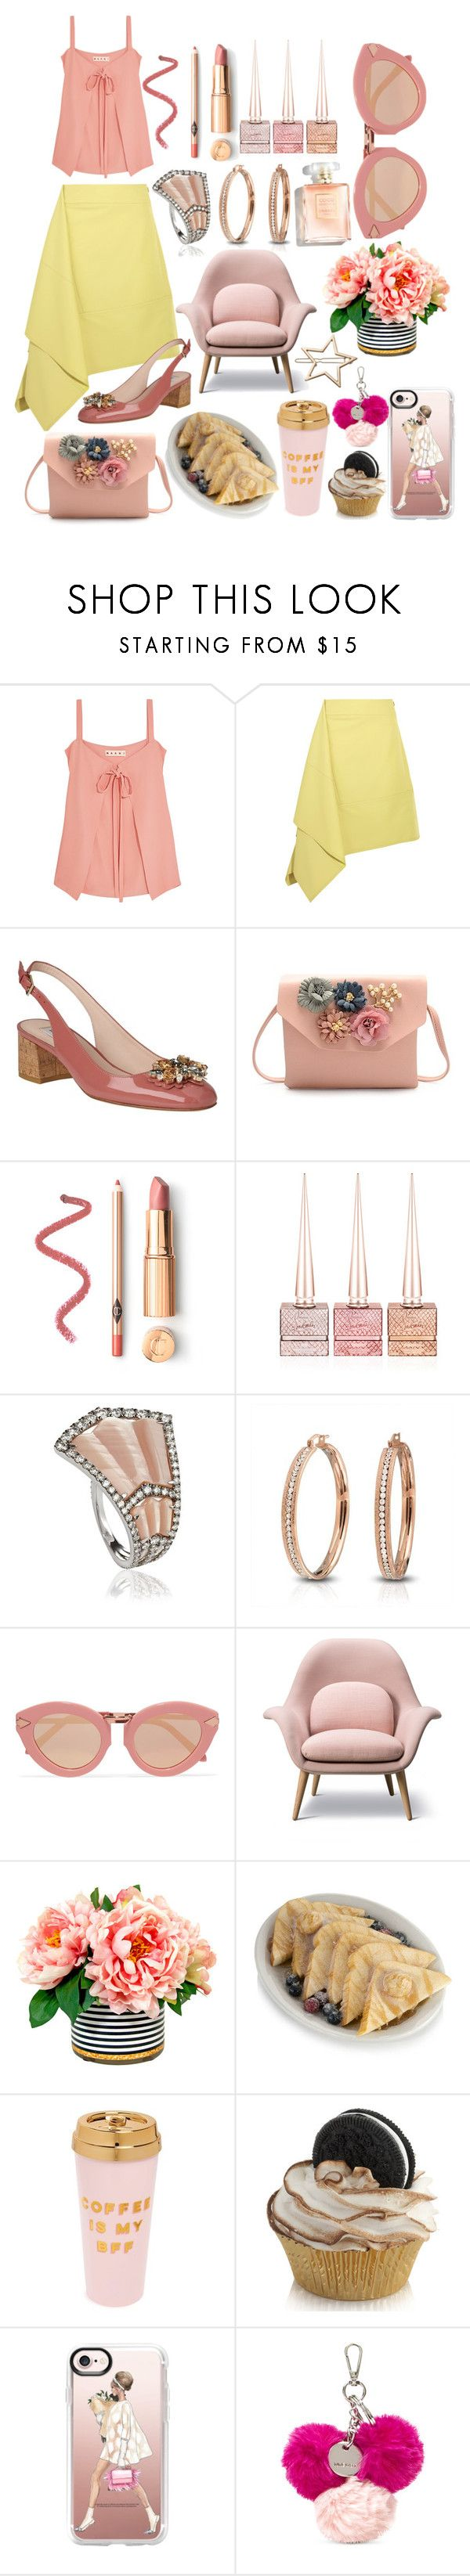 """""""Fine Mondays"""" by pulseofthematter ❤ liked on Polyvore featuring Marni, L.K.Bennett, Christian Louboutin, Annoushka, Bling Jewelry, Karen Walker, French Toast, ban.do, Casetify and Nine West"""